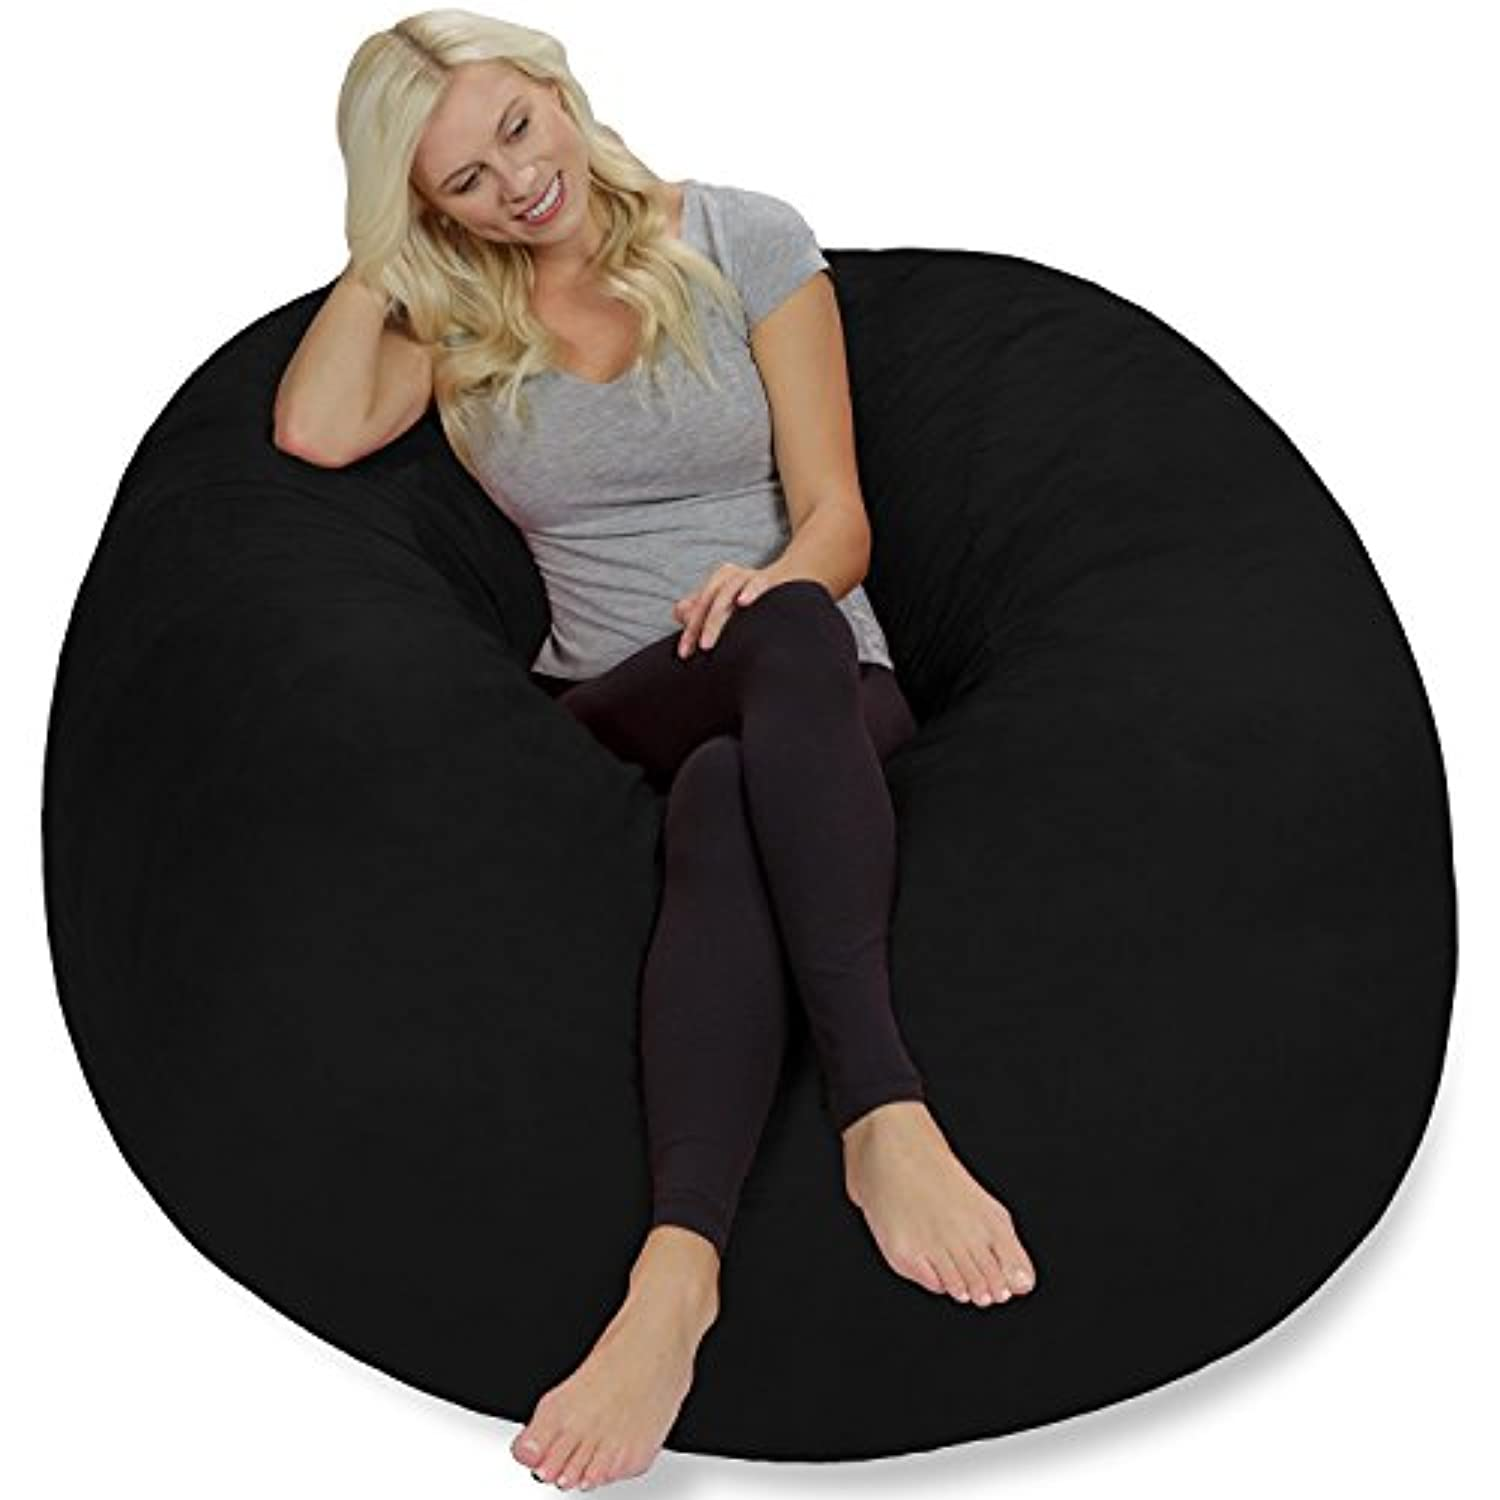 Giant 5' Memory Foam Furniture Bean Bag - Big Sofa with Soft Micro Fiber Cover - Black